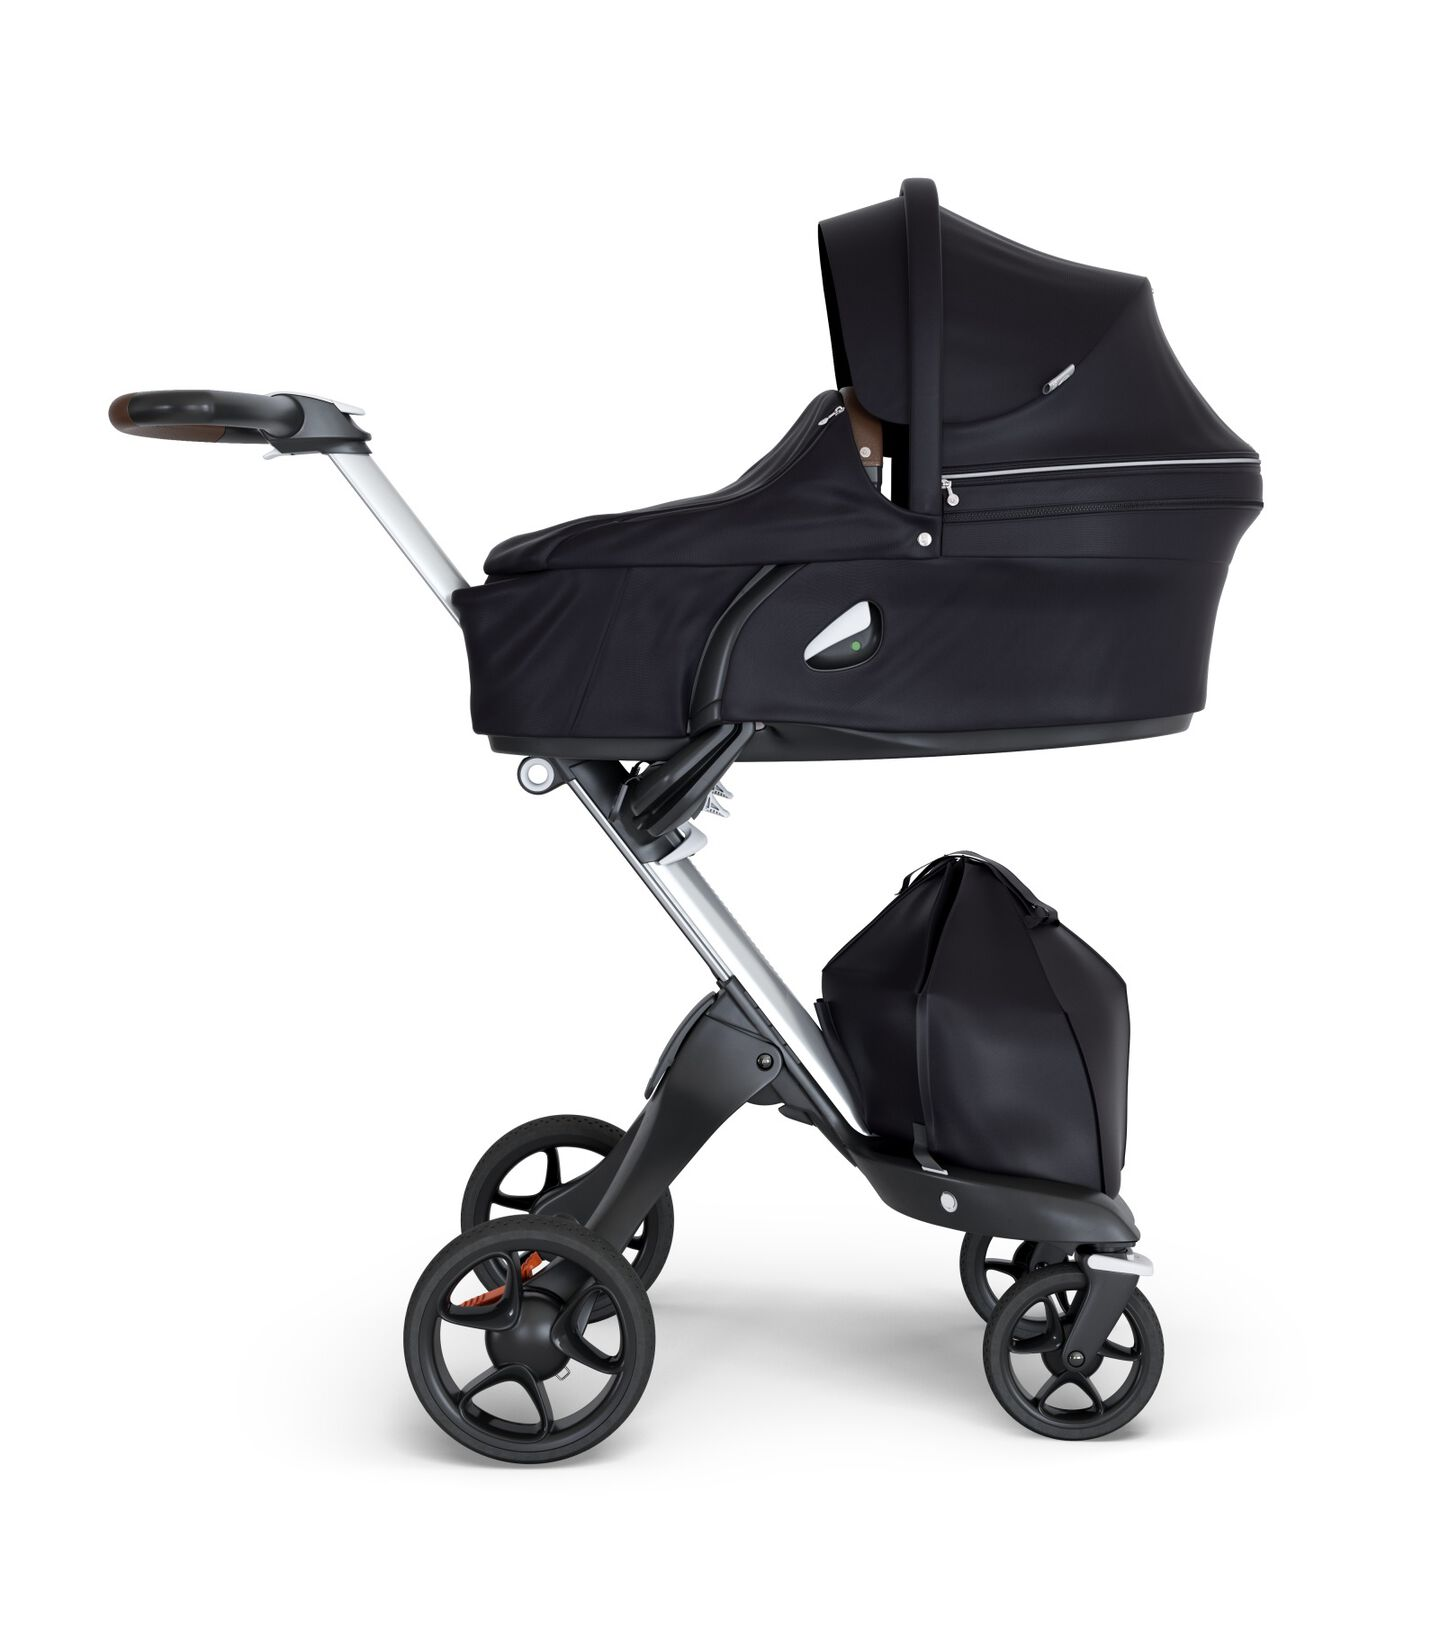 Stokke® Xplory® wtih Silver Chassis and Leatherette Brown handle. Stokke® Stroller Carry Cot Black.